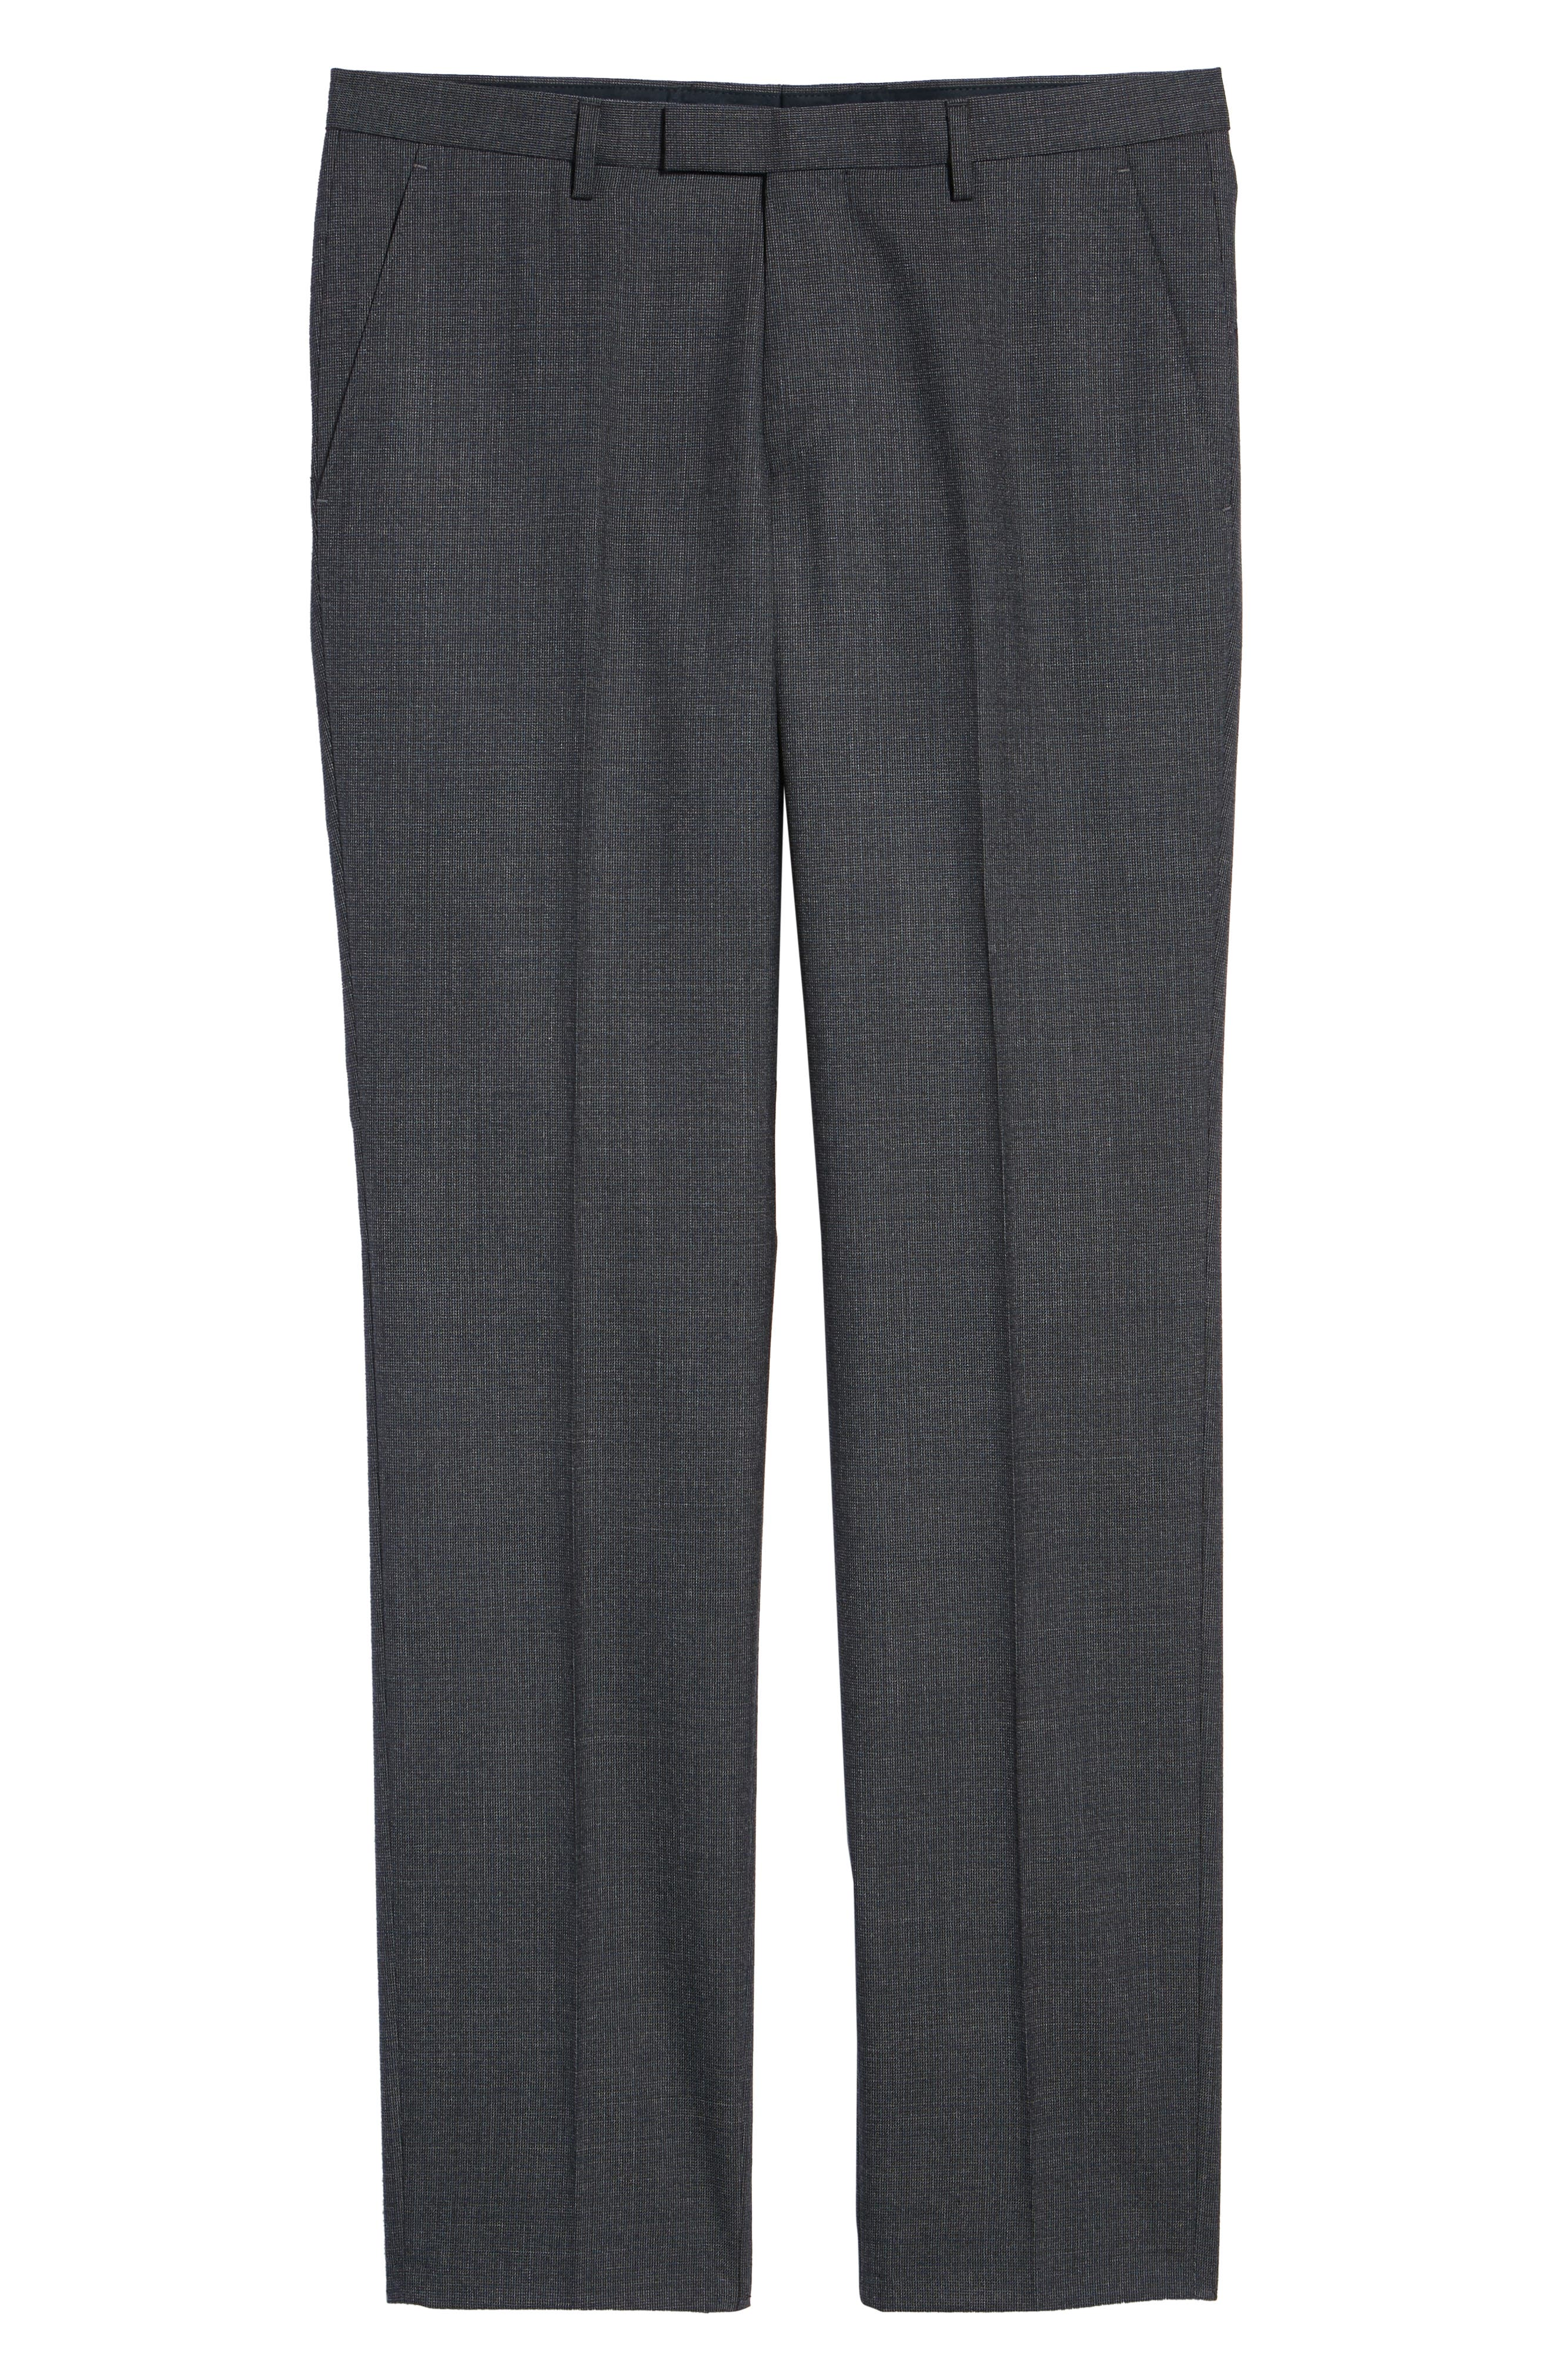 Leenon Flat Front Solid Wool Trousers,                             Alternate thumbnail 6, color,                             OPEN BLUE